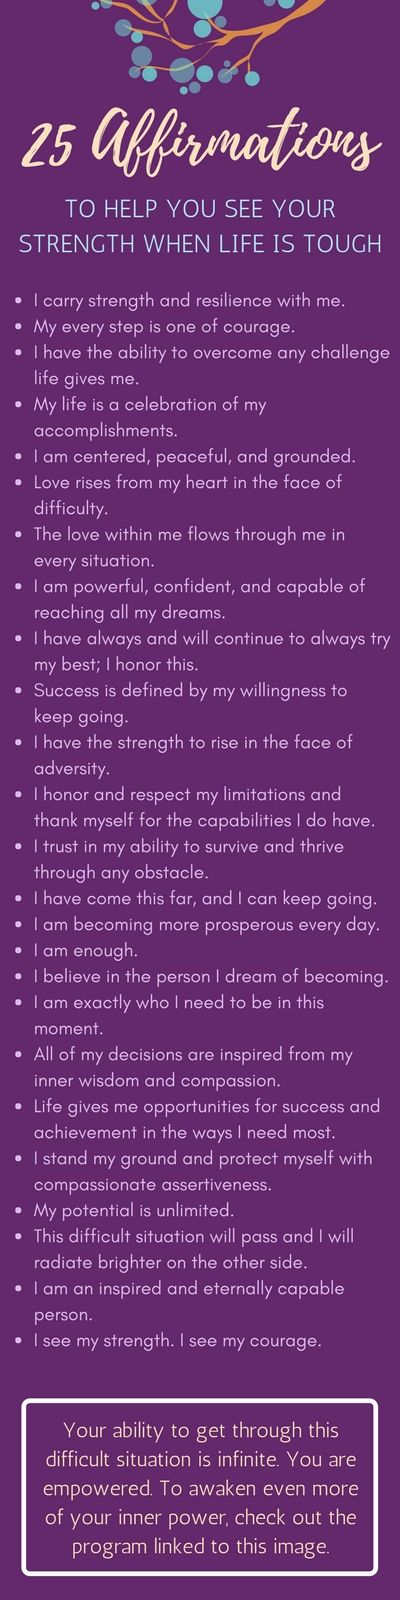 25 affirmations to help you see your inner strength when life is tough. Mental Illness | Recovery | Healing | Inspiration | Mindfulness